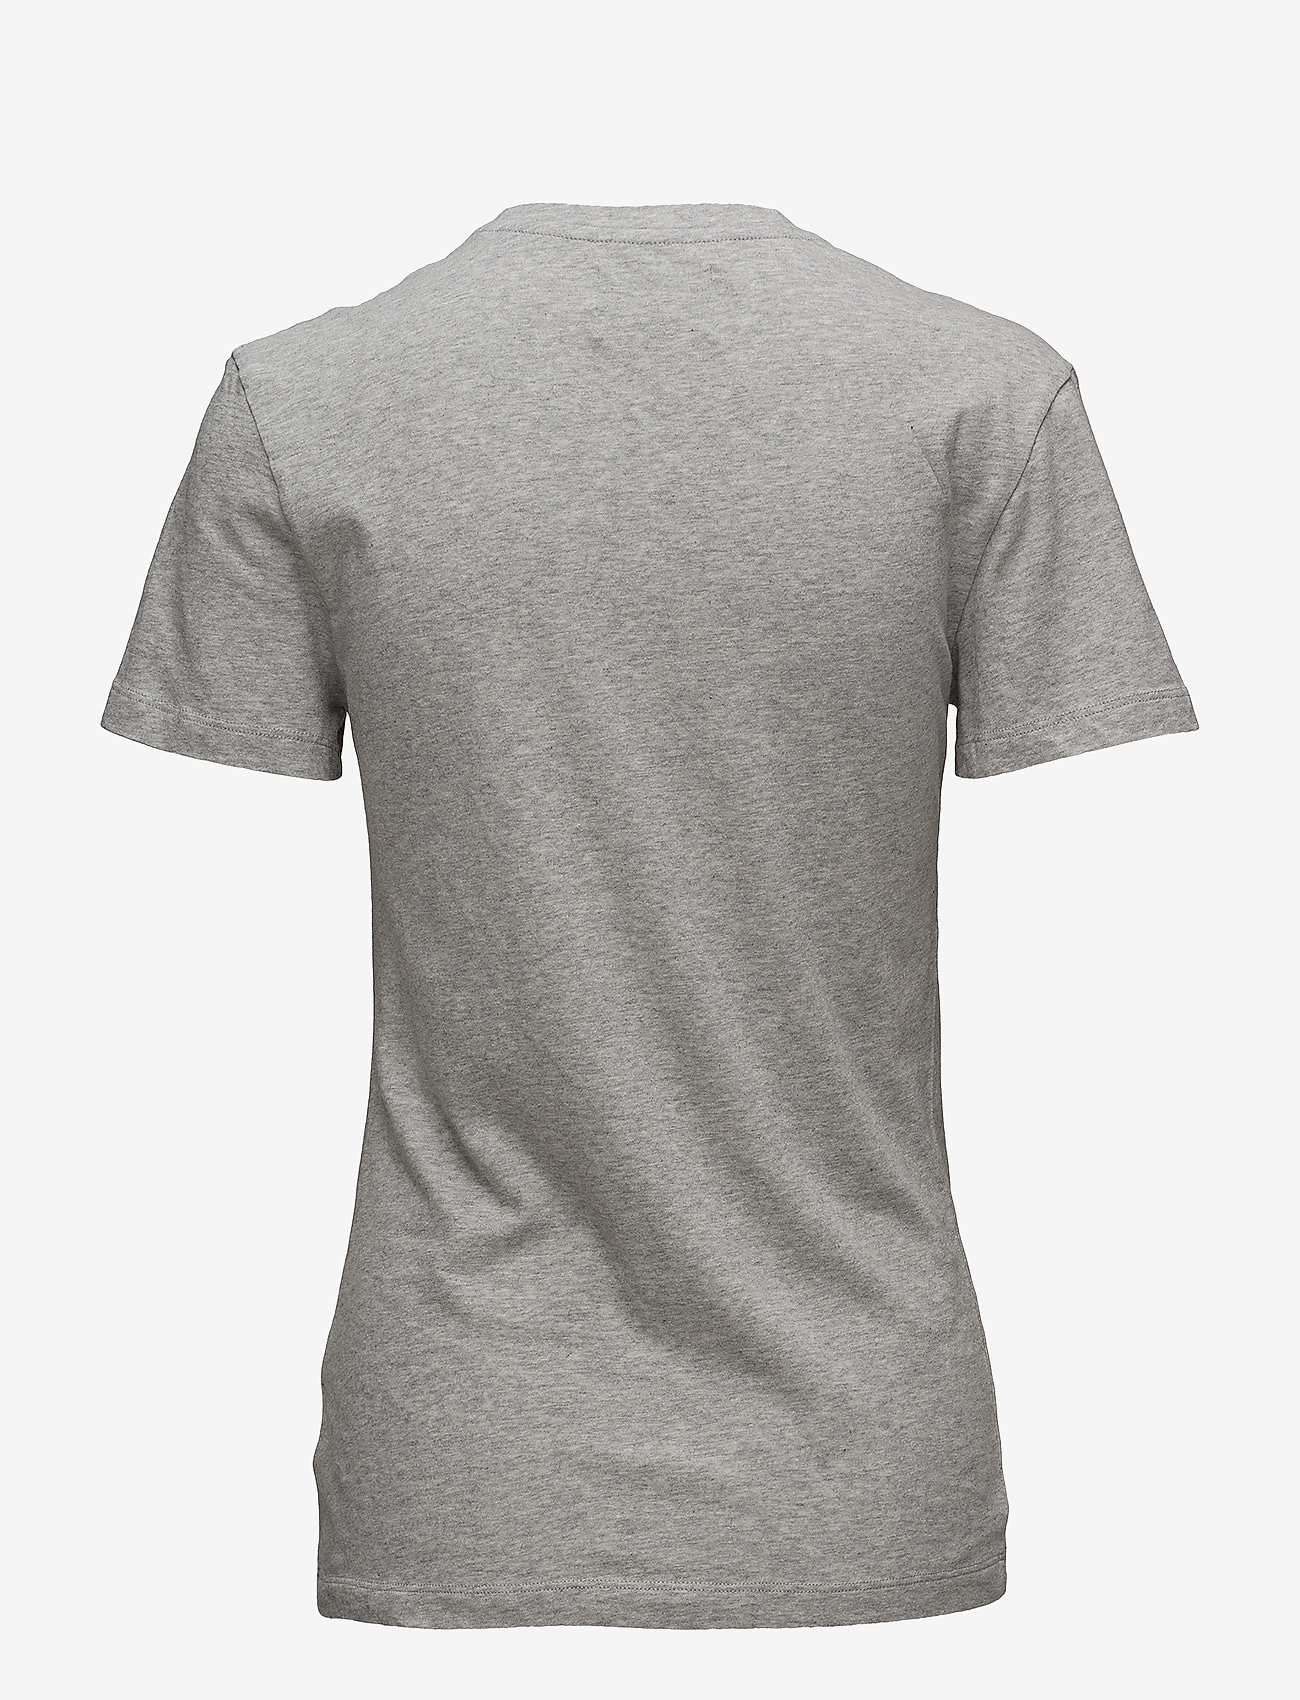 Calvin Klein Jeans - CORE MONOGRAM LOGO REGULAR FIT TEE - t-shirts - light grey heather - 1